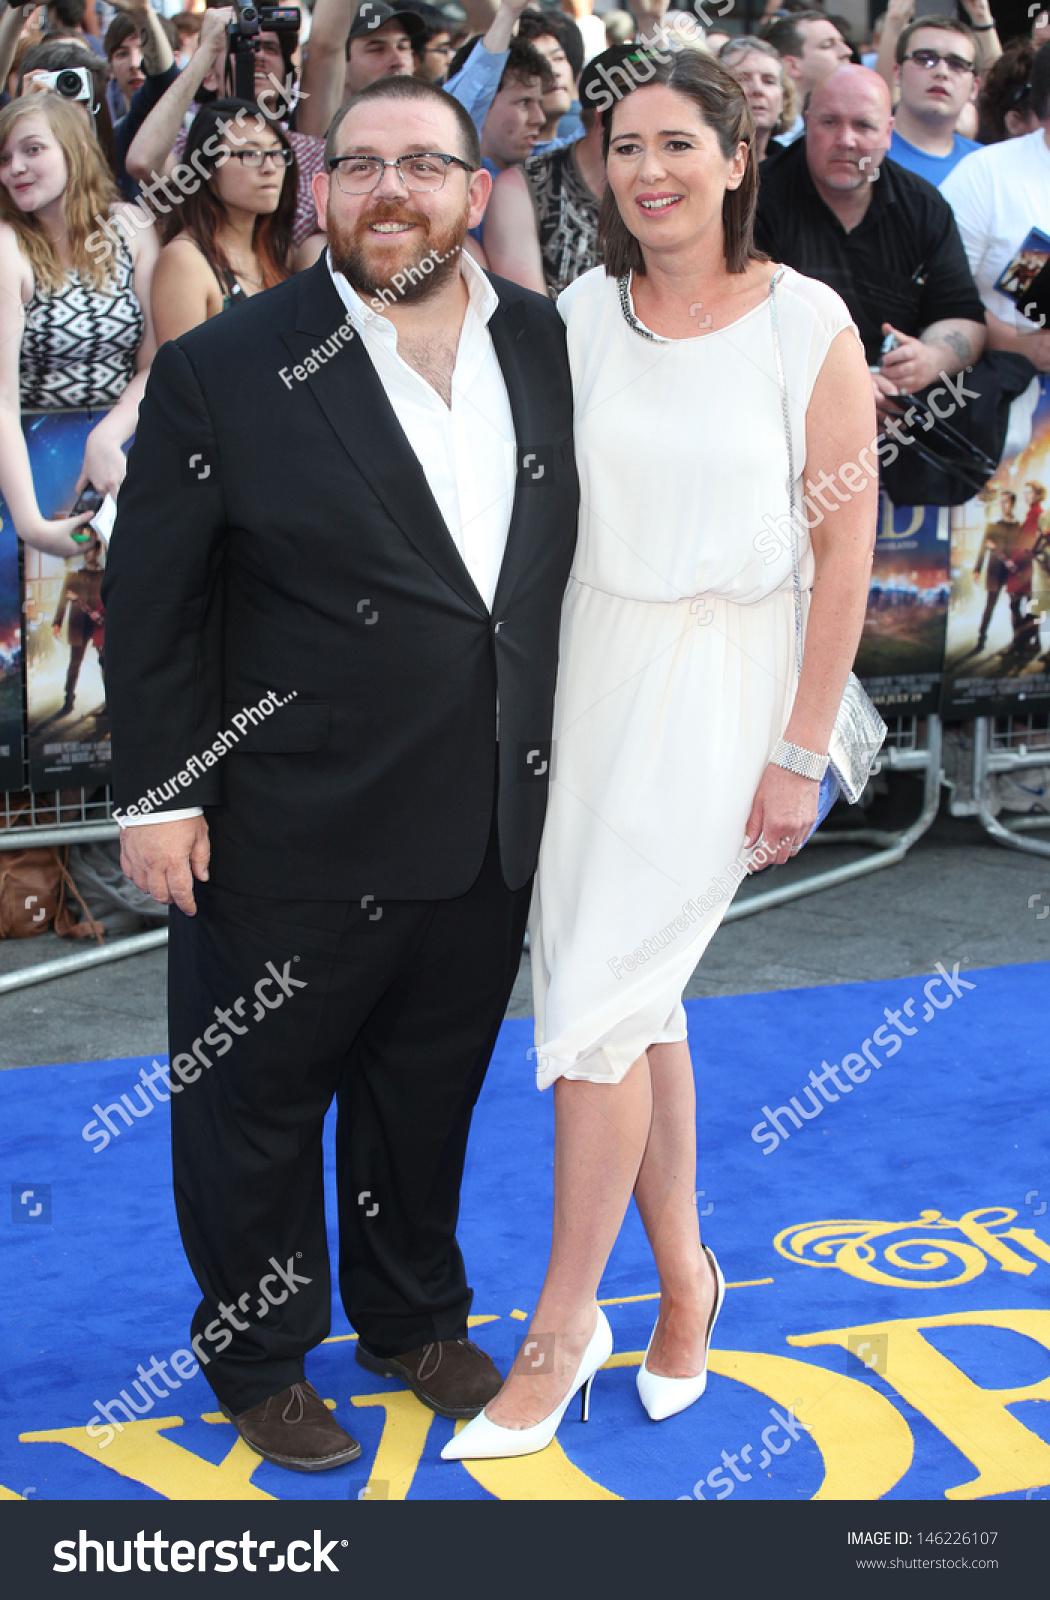 Nick Frost Wife Christina Arriving Worlds Stock PhotoNick Frost Wife